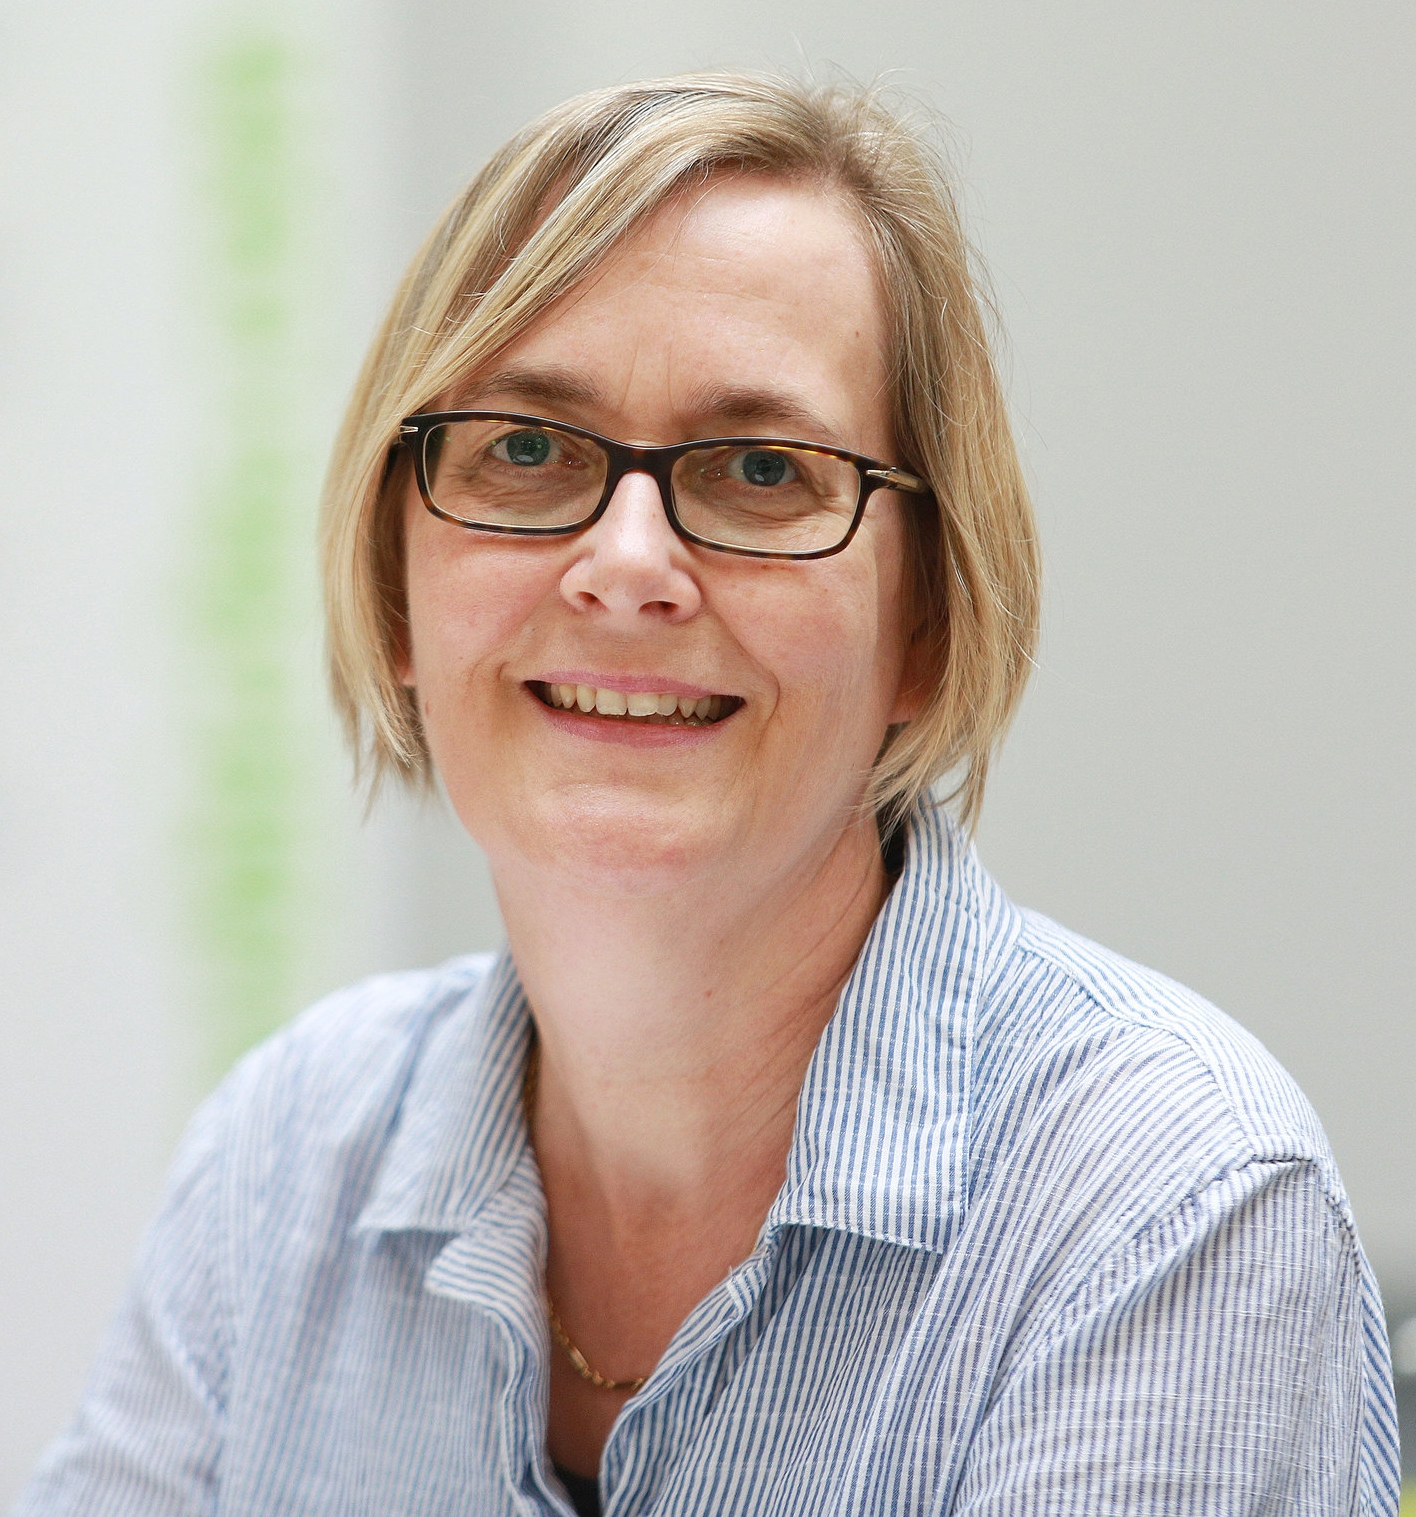 Dr. Kirsten Jensen - Senior Research Officer/Project Manager SynbiCITE Imperial College LondonDr. Kirsten Jensen has been working in research for over 20 years. She began her career in Hamburg at the Heinrich Pette Institute - Leibniz Institute for Experimental Virology, where she worked on the molecular basis of Acute Promyelocytic Leukaemia.